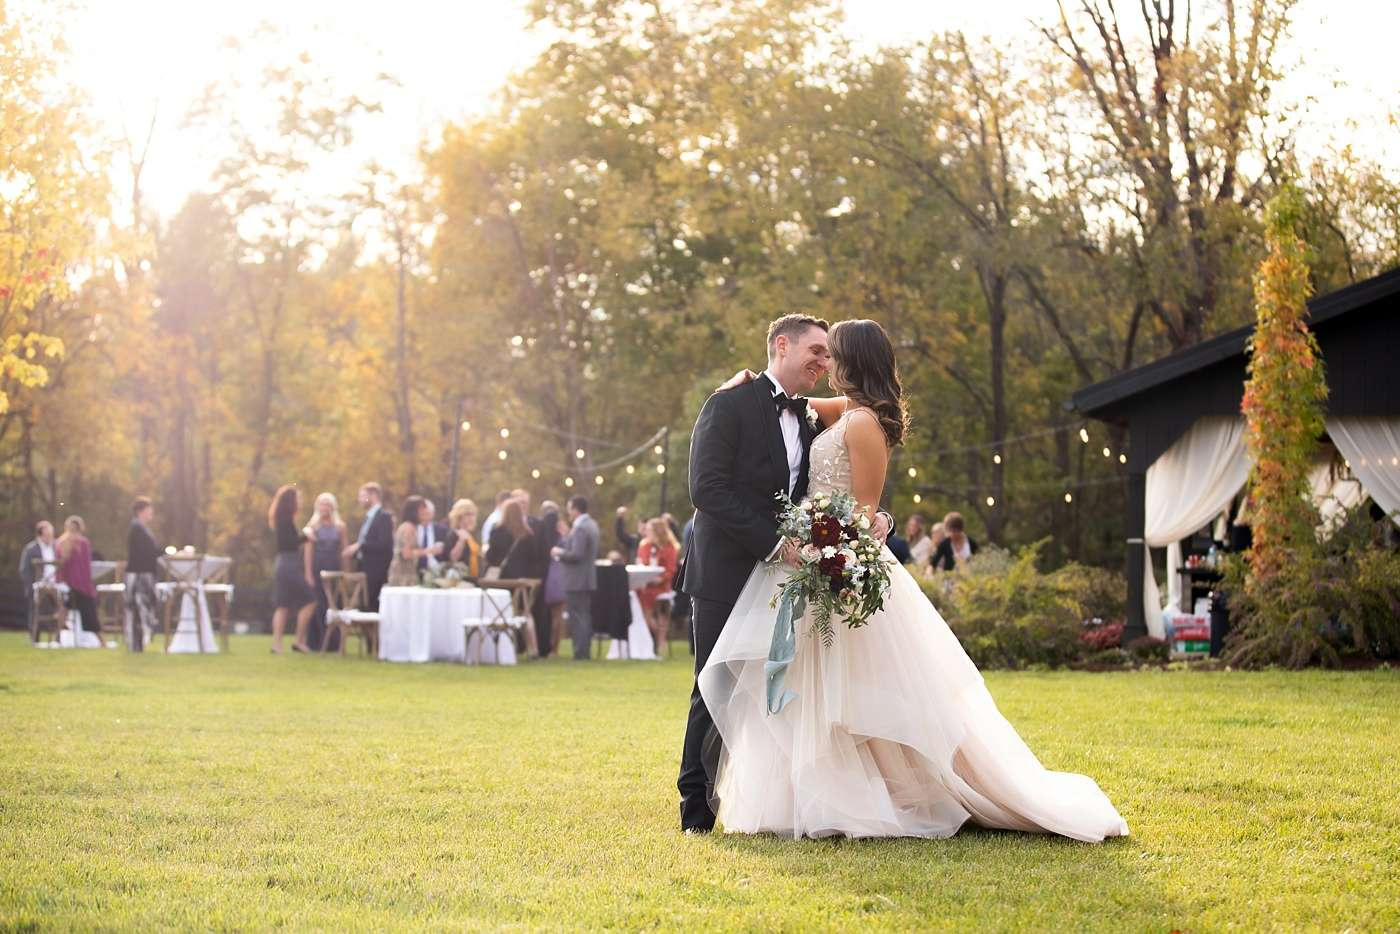 bride and groom looking at each other and smiling against a backdrop of fall foliage at sunset